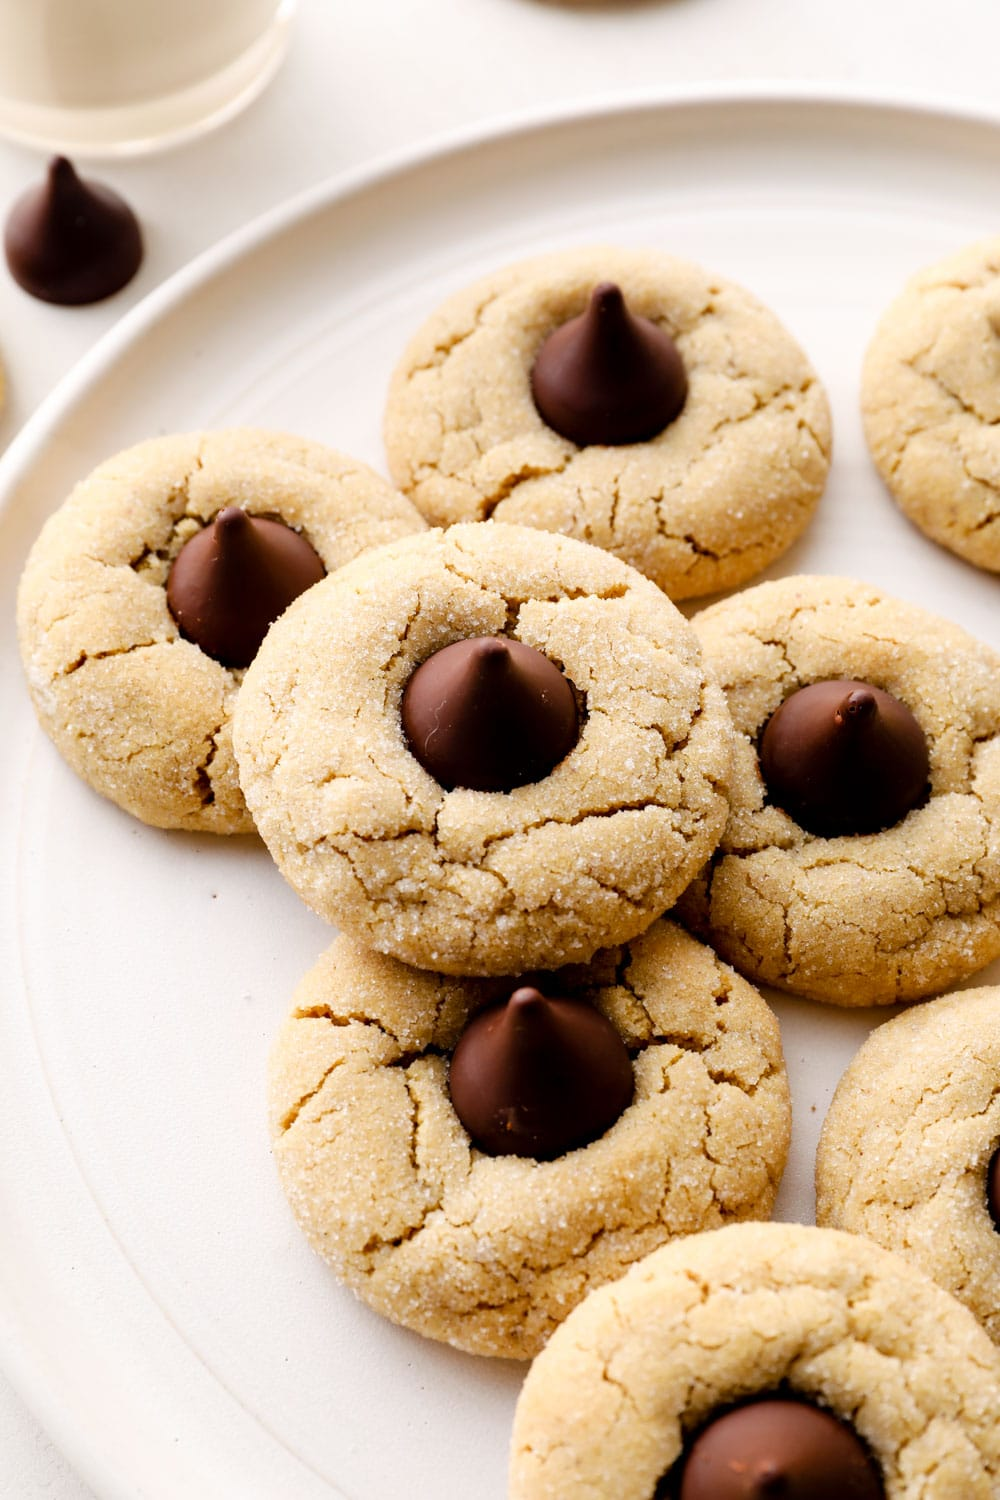 Gluten Free Peanut Butter Blossoms on a plate with dark chocolate.